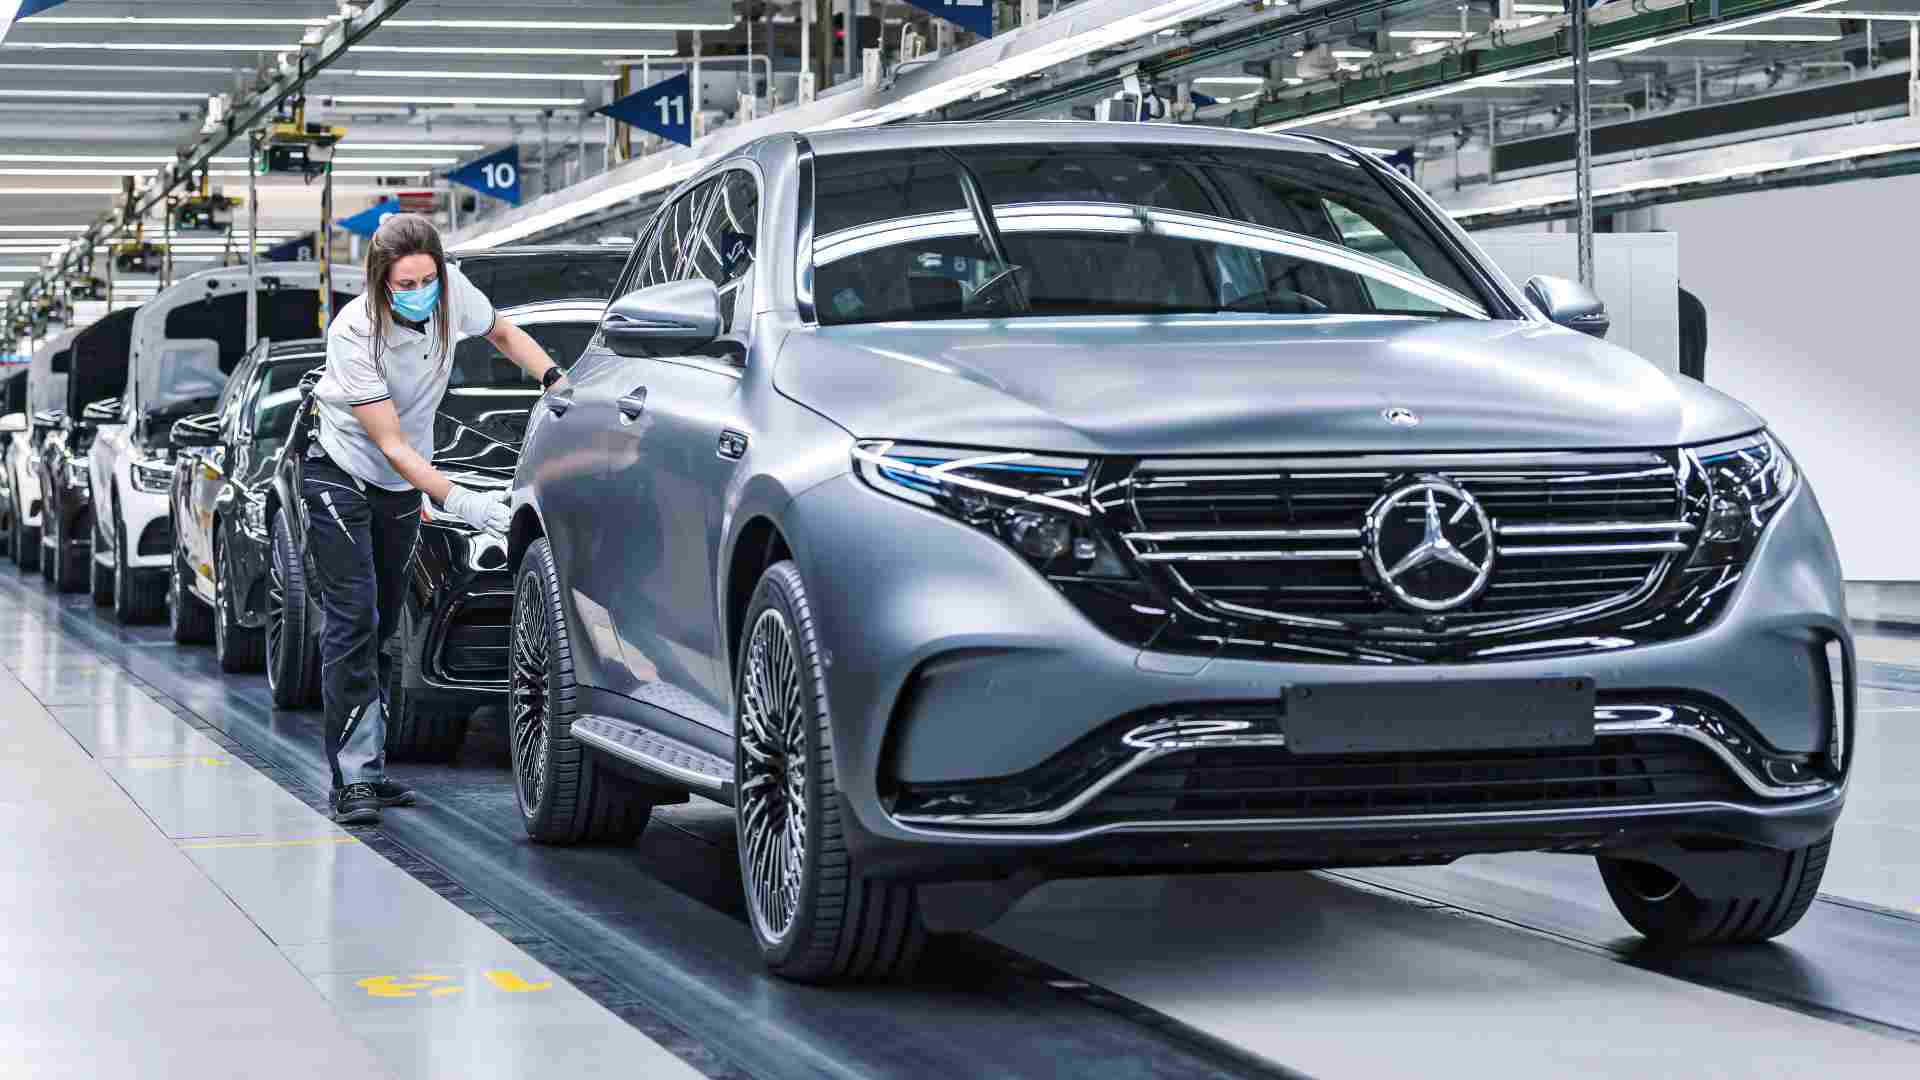 Mercedes-Benz aims to go electric-only by 2030, will launch G-Class EV by 2024- Technology News, FP